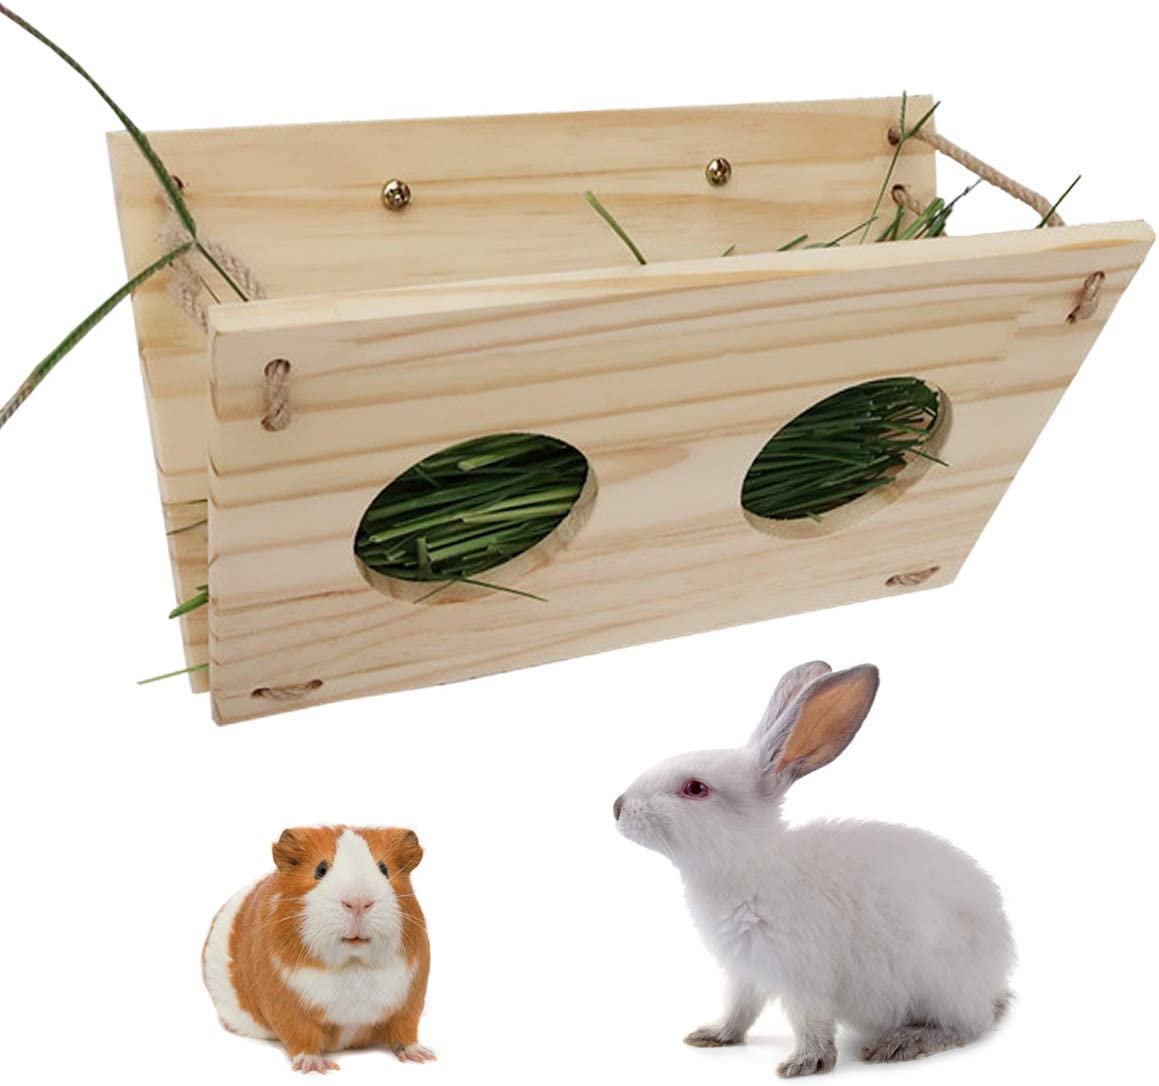 Rabbit Wooden Hay Rack Multi-Functional Manger Grass Holder for Small Pets Bunny Chinchilla Guinea Pigs